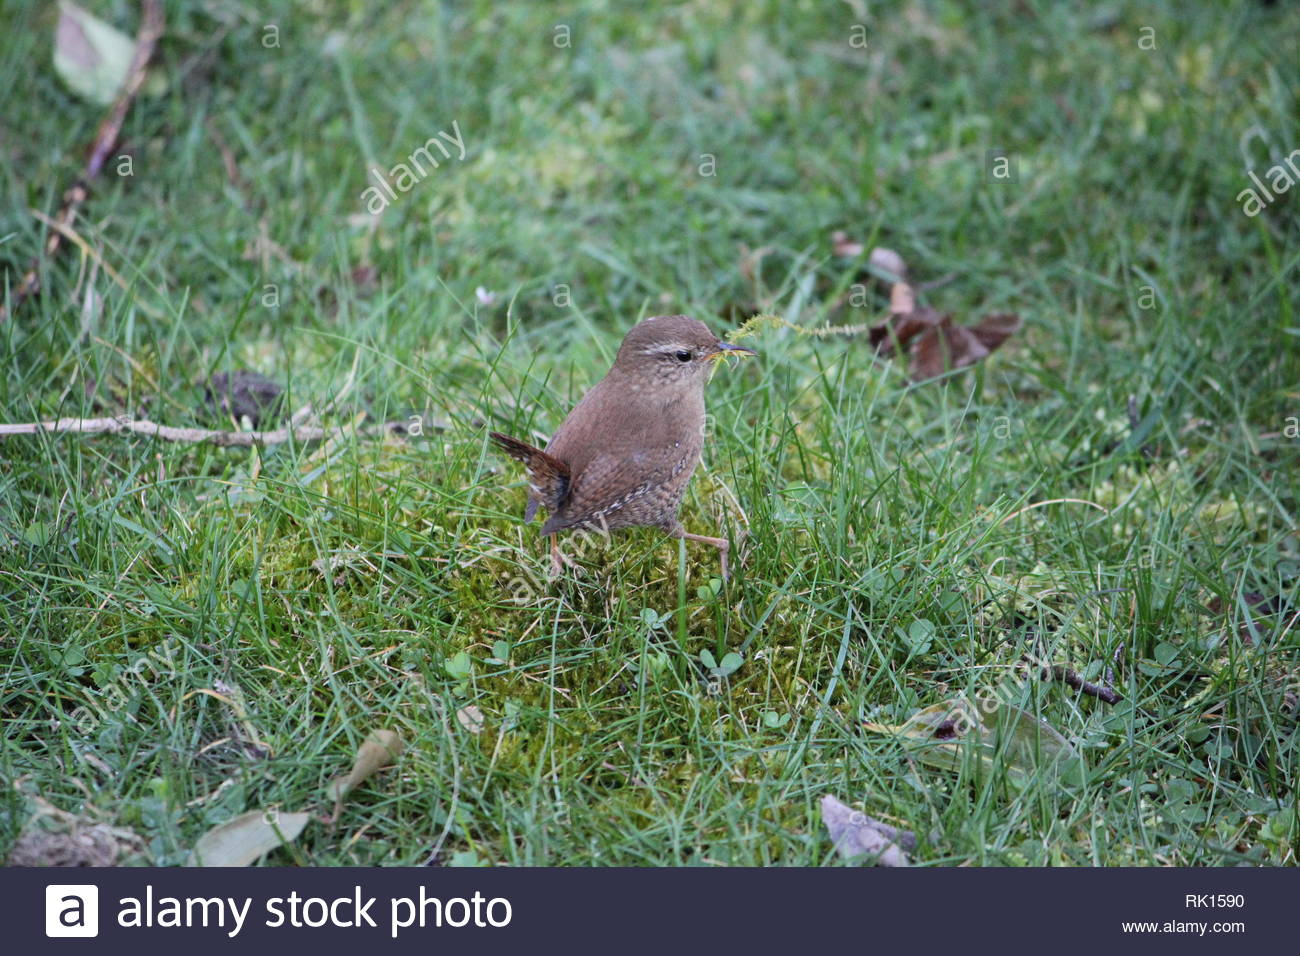 European Wren (Troglodytes troglodytes) collecting moss for nest-building in a park at Bocholt, Germany. - Stock Image